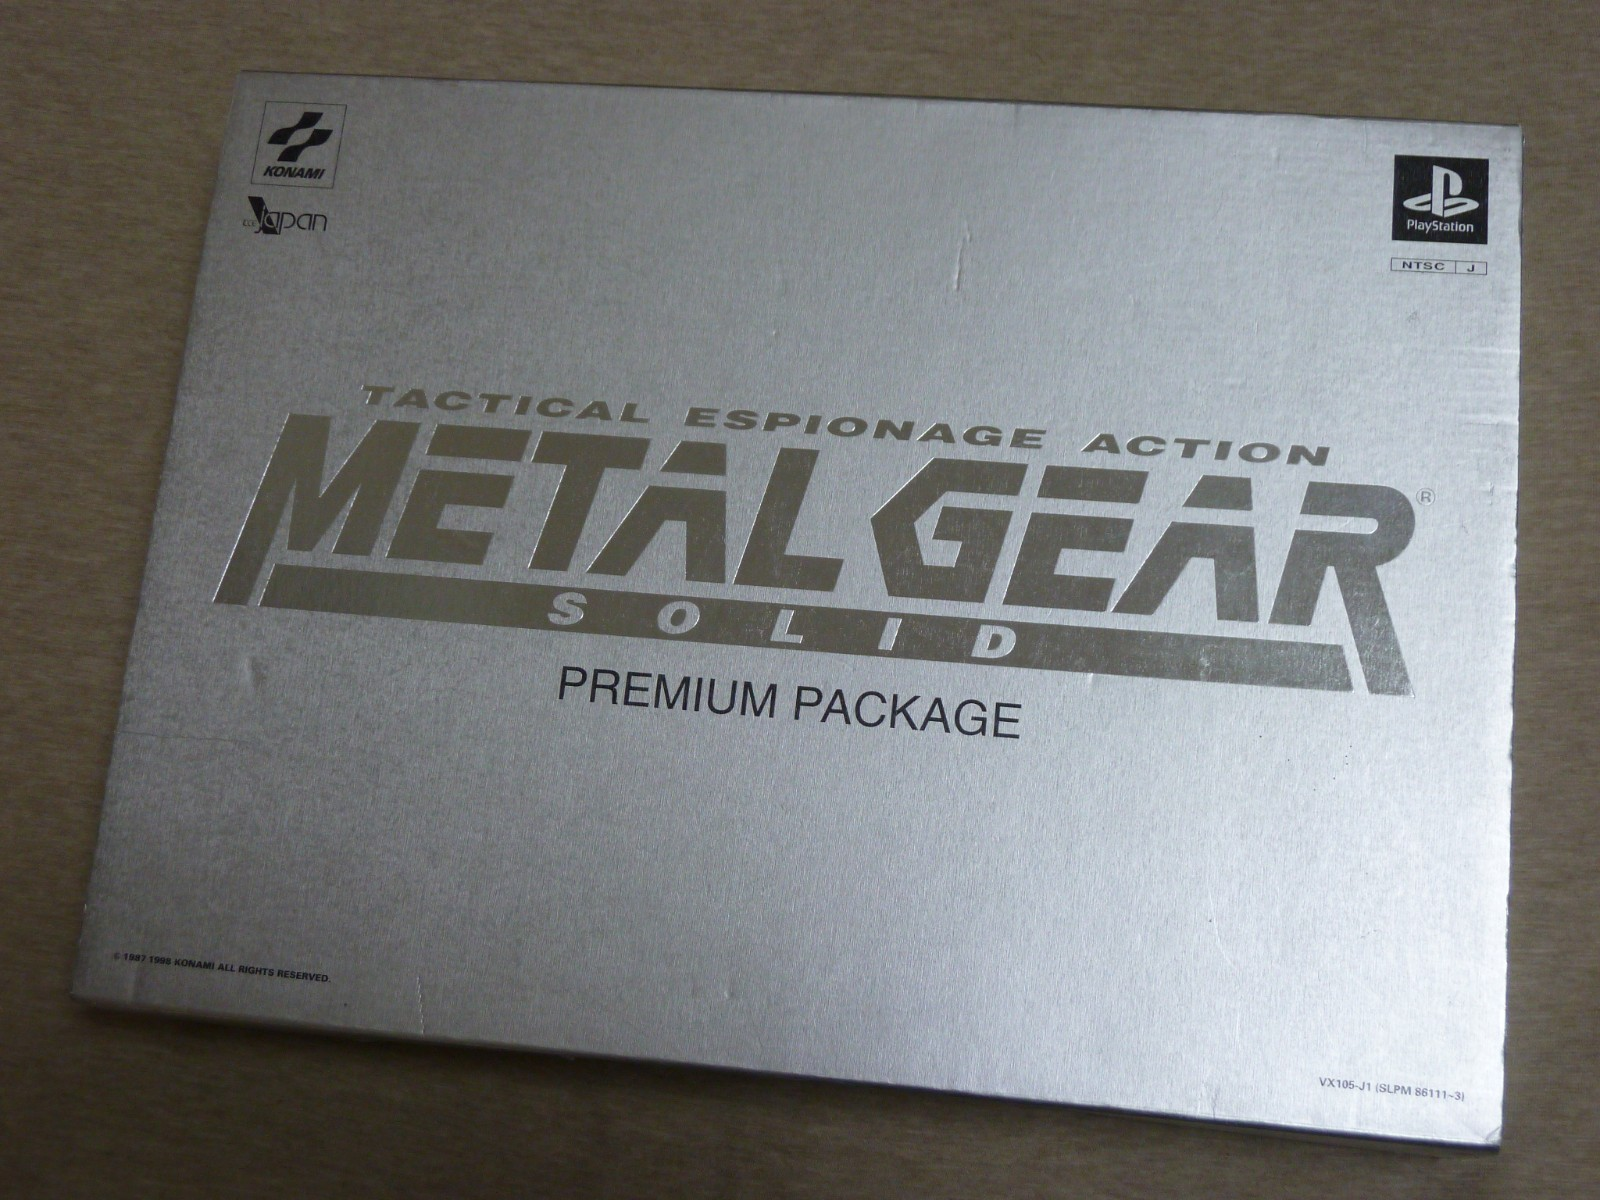 Sony-Play-Station-METAL-GEAR-SOLID-Premium-Package-Limited-Edition-PS-Japan-USED